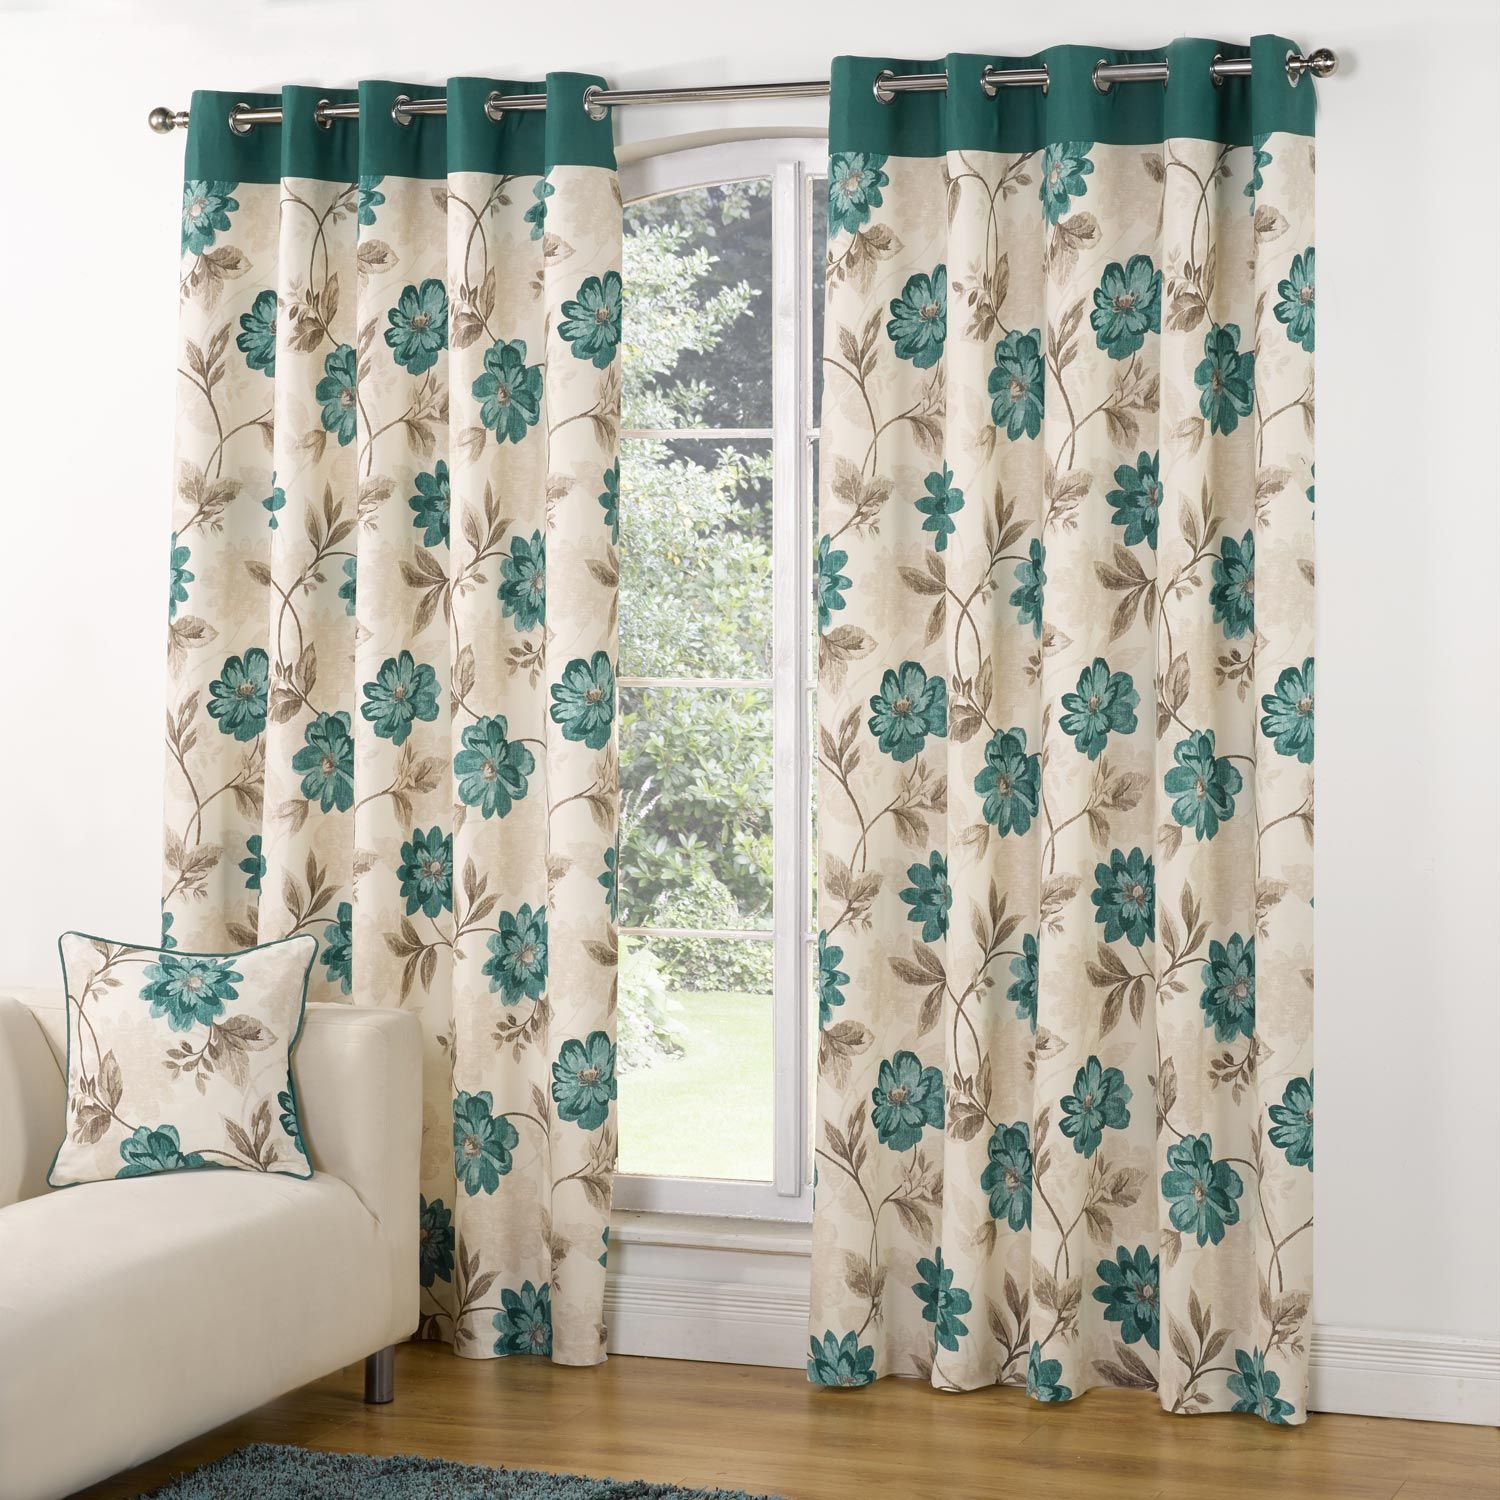 Modern Casa Floral Trail Print Lined Eyelet Curtains Teal - Teal ...